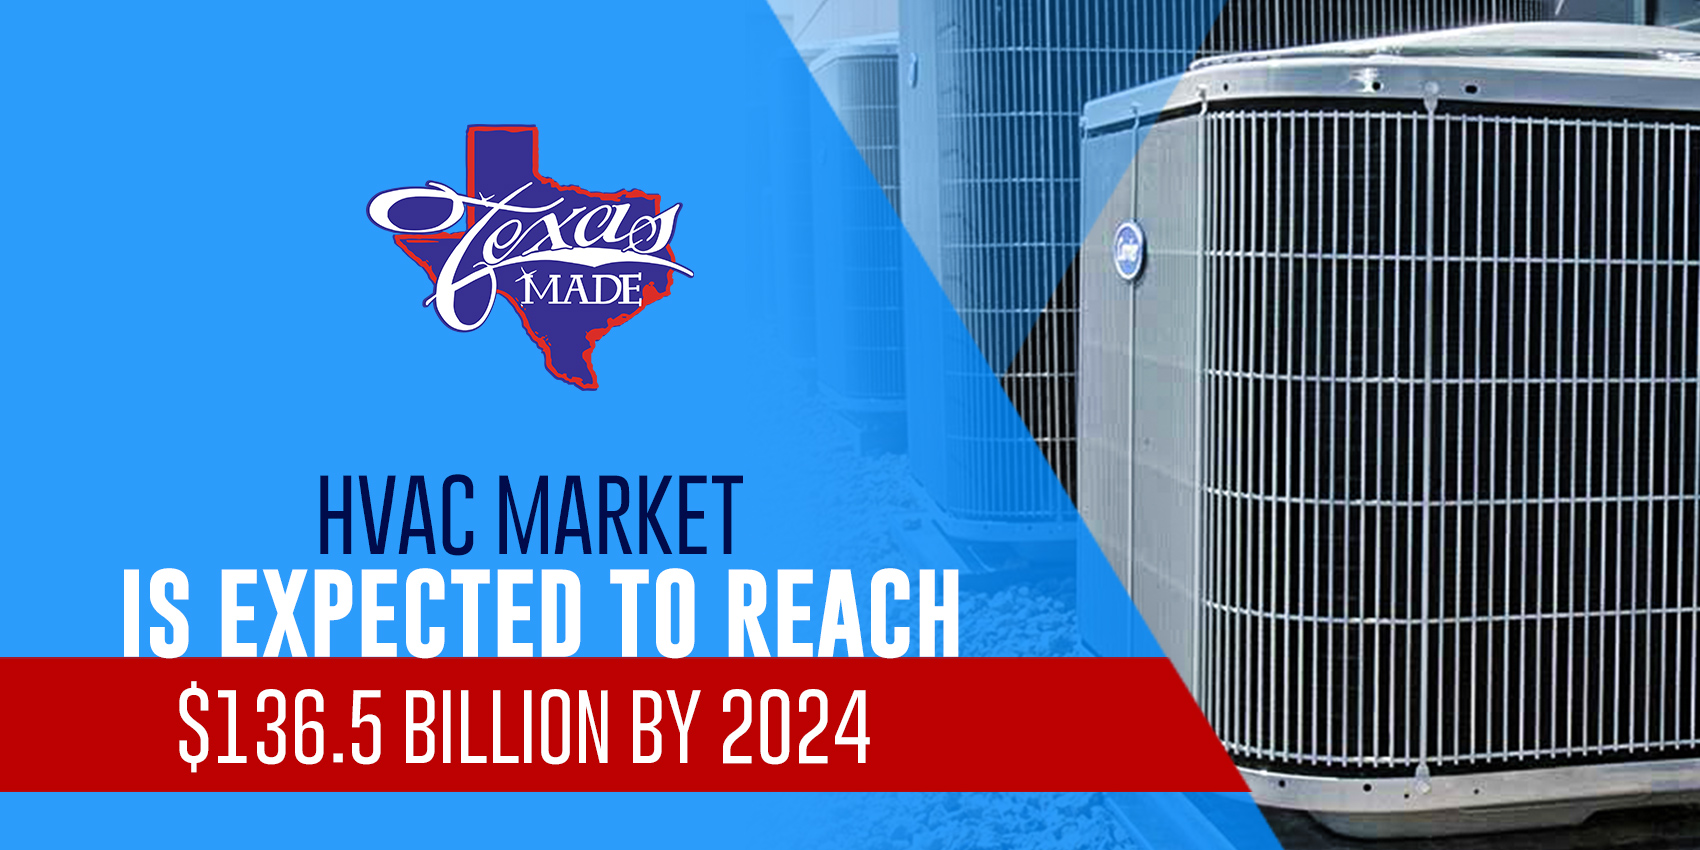 HVAC Market is Expected to Reach $136.5 Billion by 2024